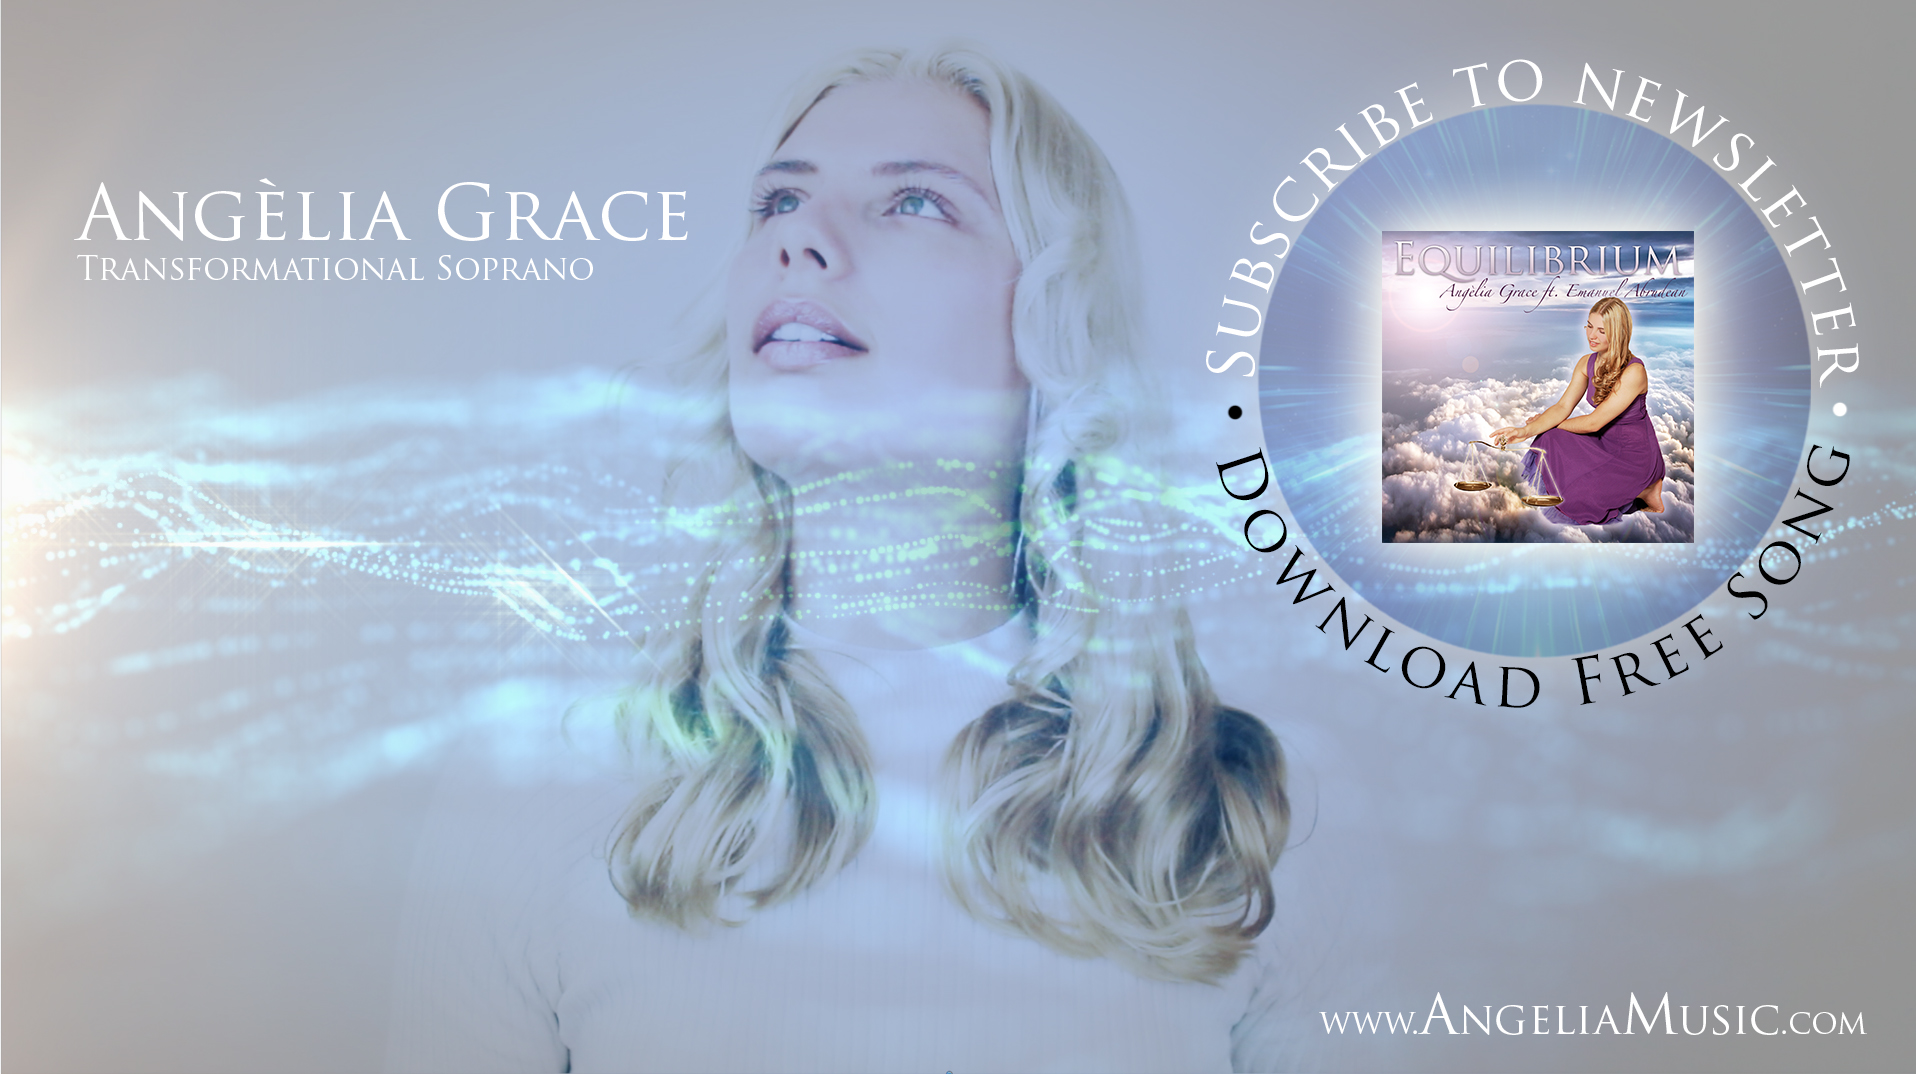 Download free song from Angèlia Grace